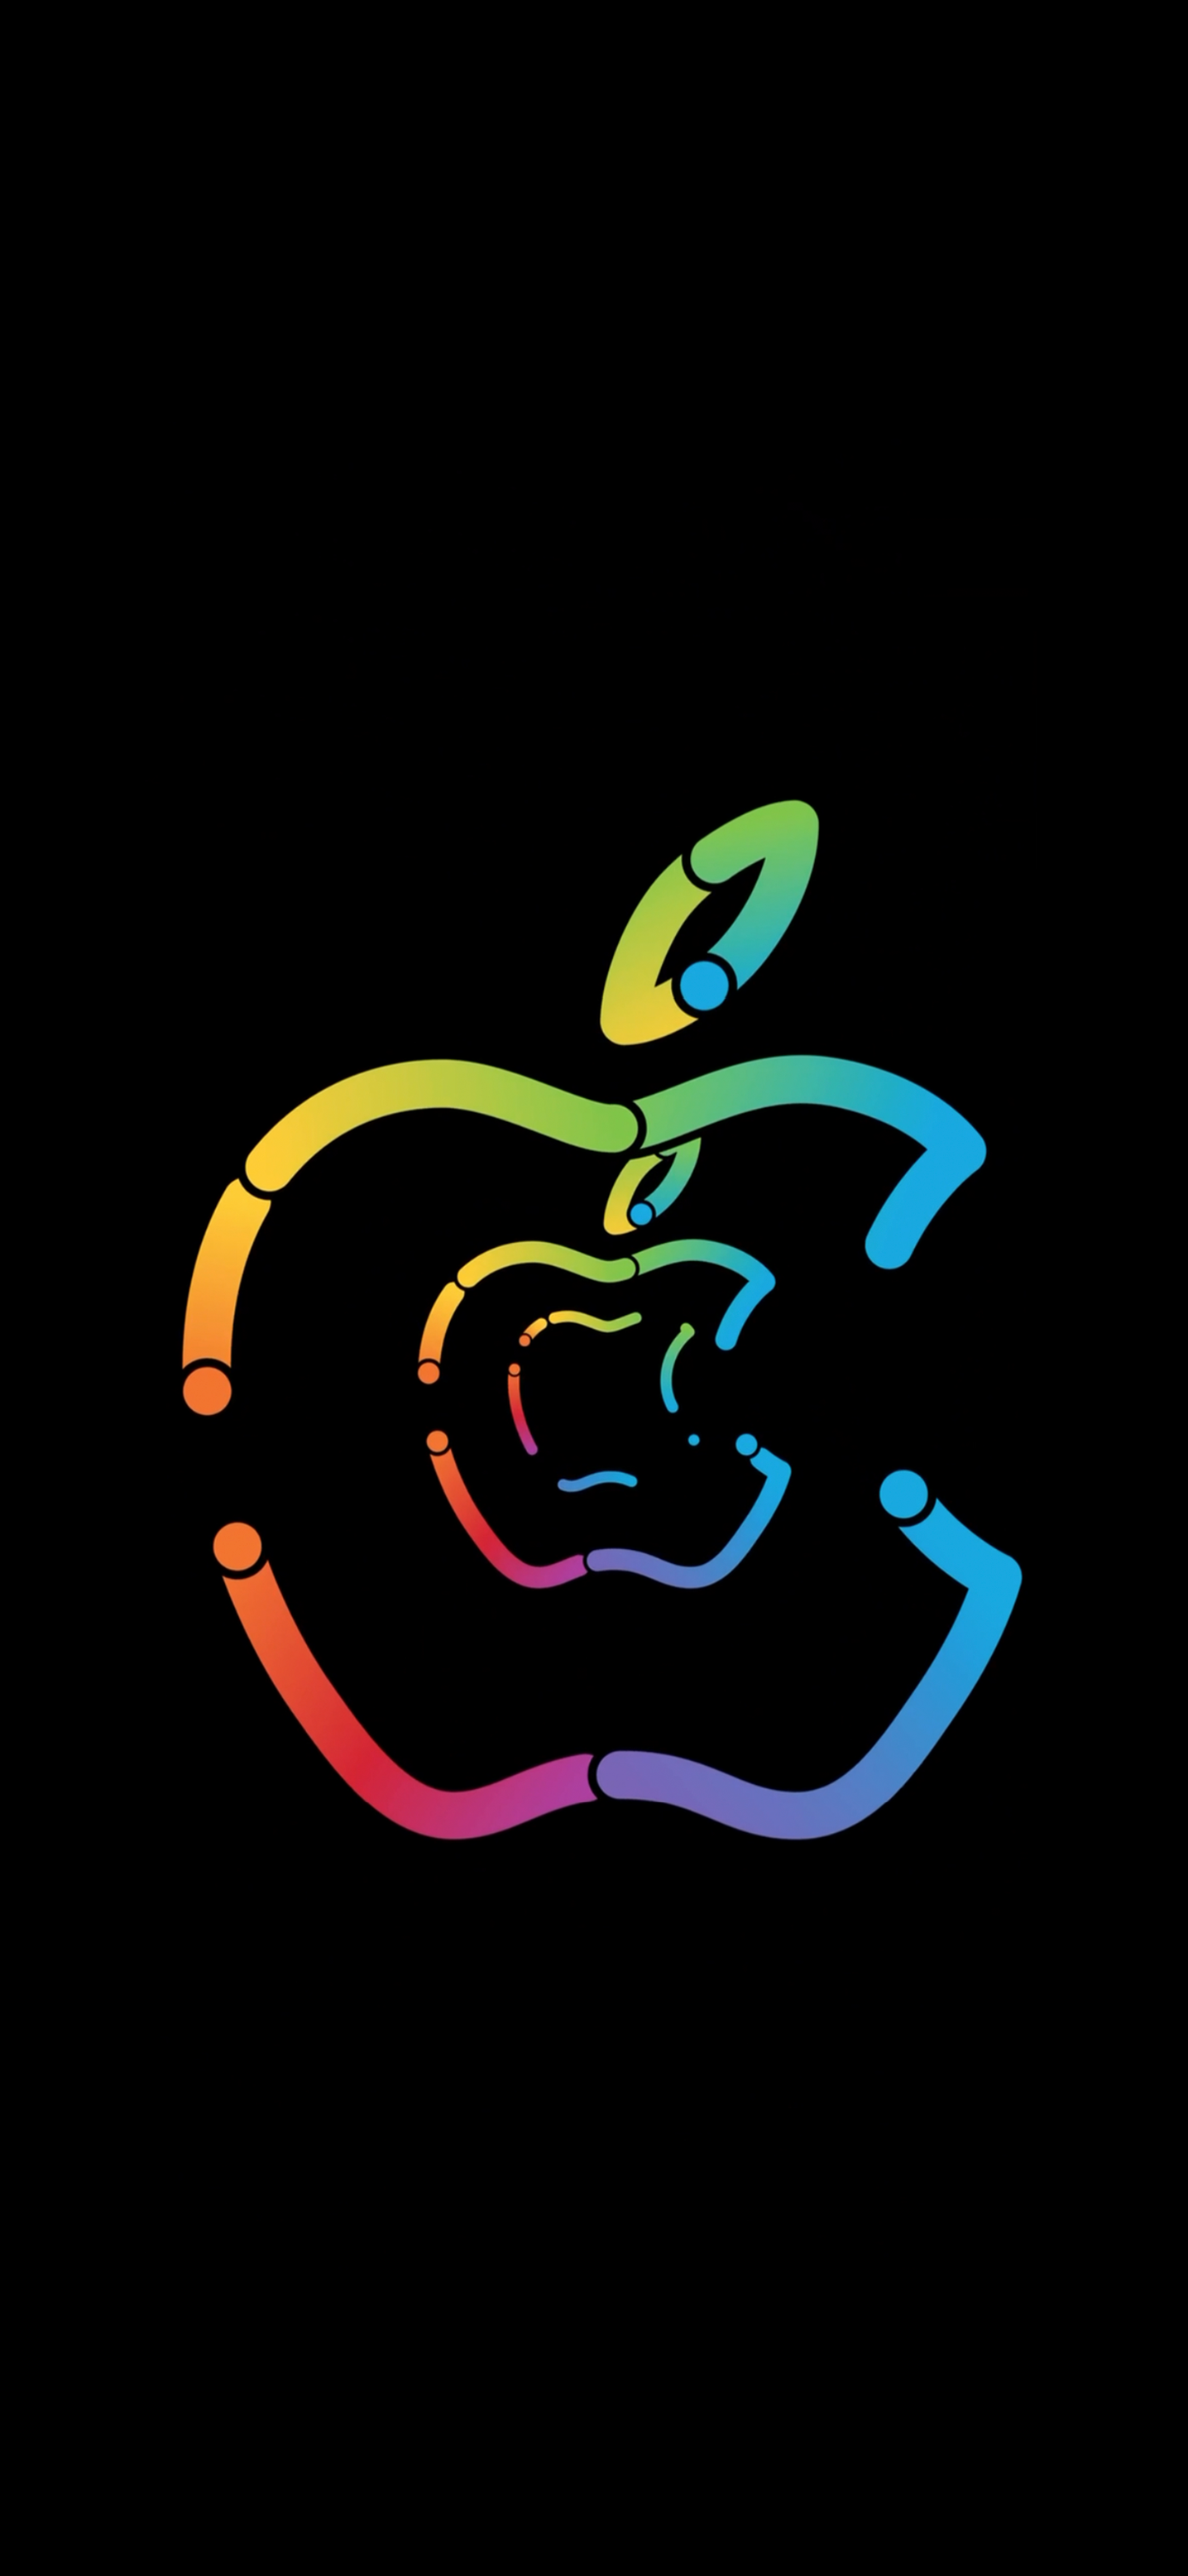 Apple Logo Animation Iphone 11 Promotional Live Wallpaper Wallpapers Central